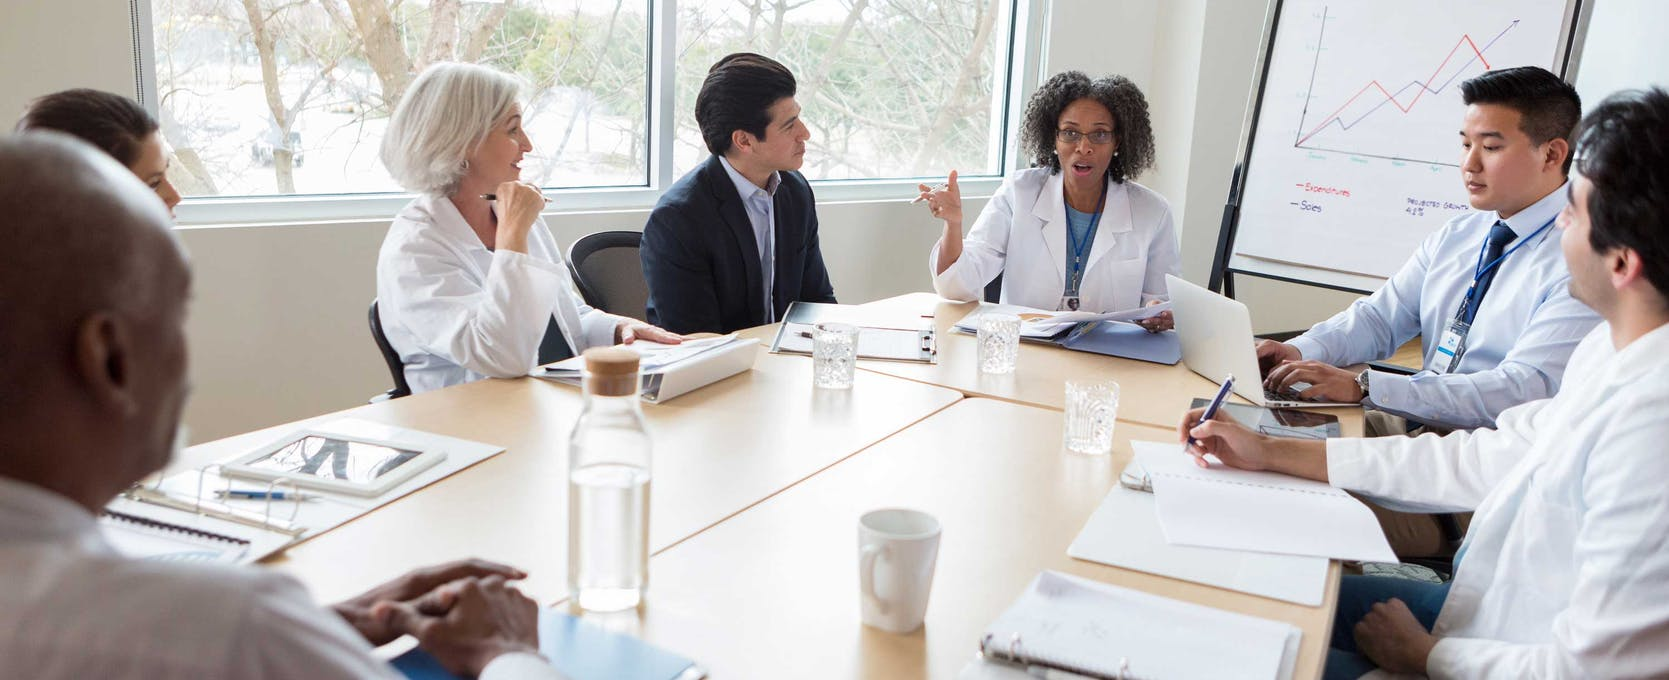 Medical management team discusses data and technology strategy in a conference room